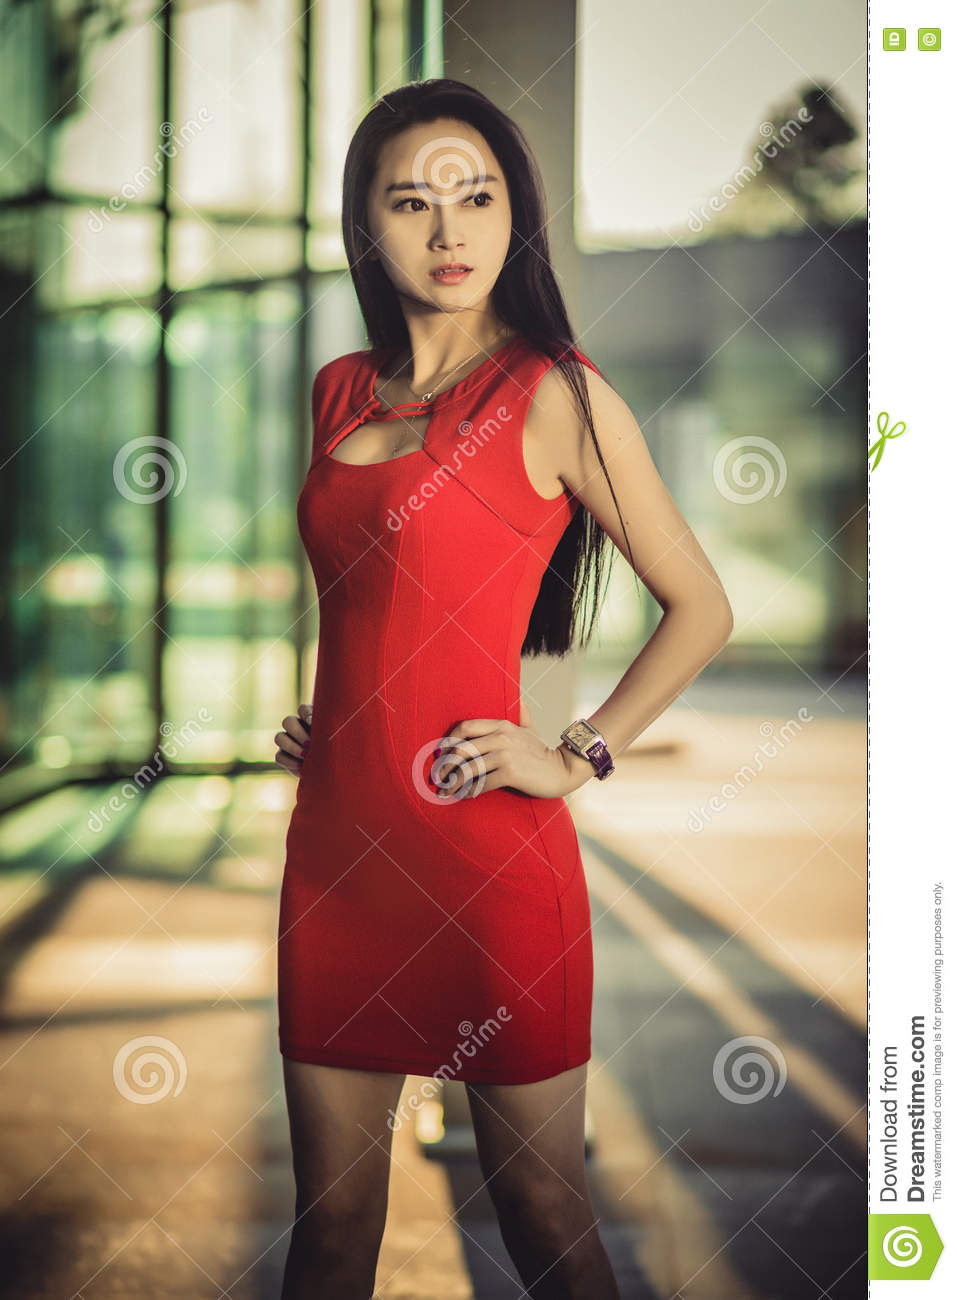 modeling Asian woman